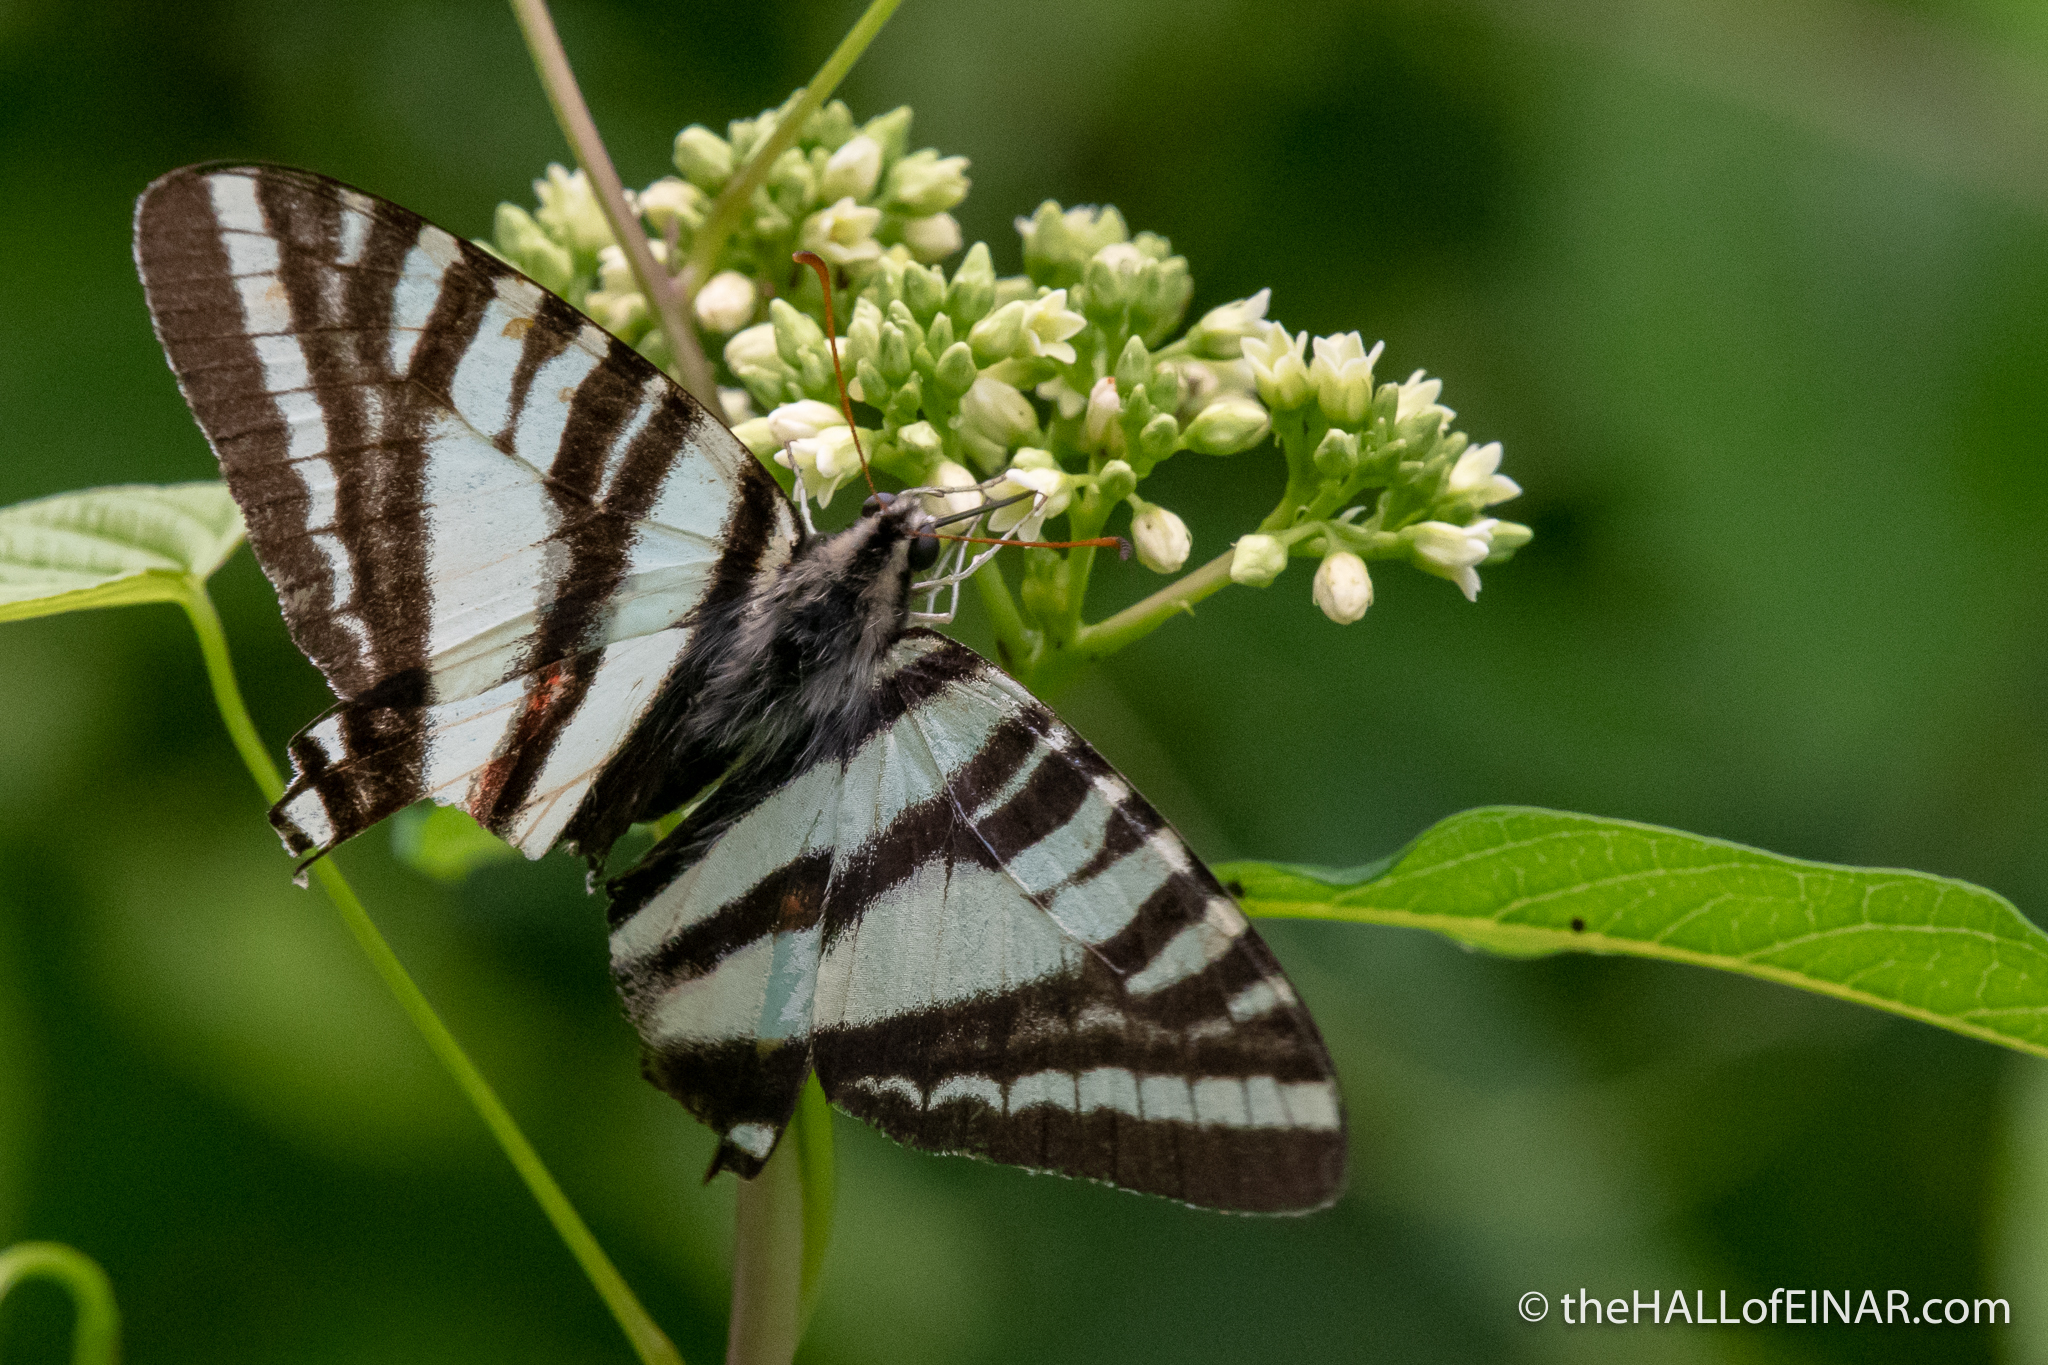 Zebra Swallowtail - Eurytides marcellus - The Hall of Einar - photograph (c) David Bailey (not the)